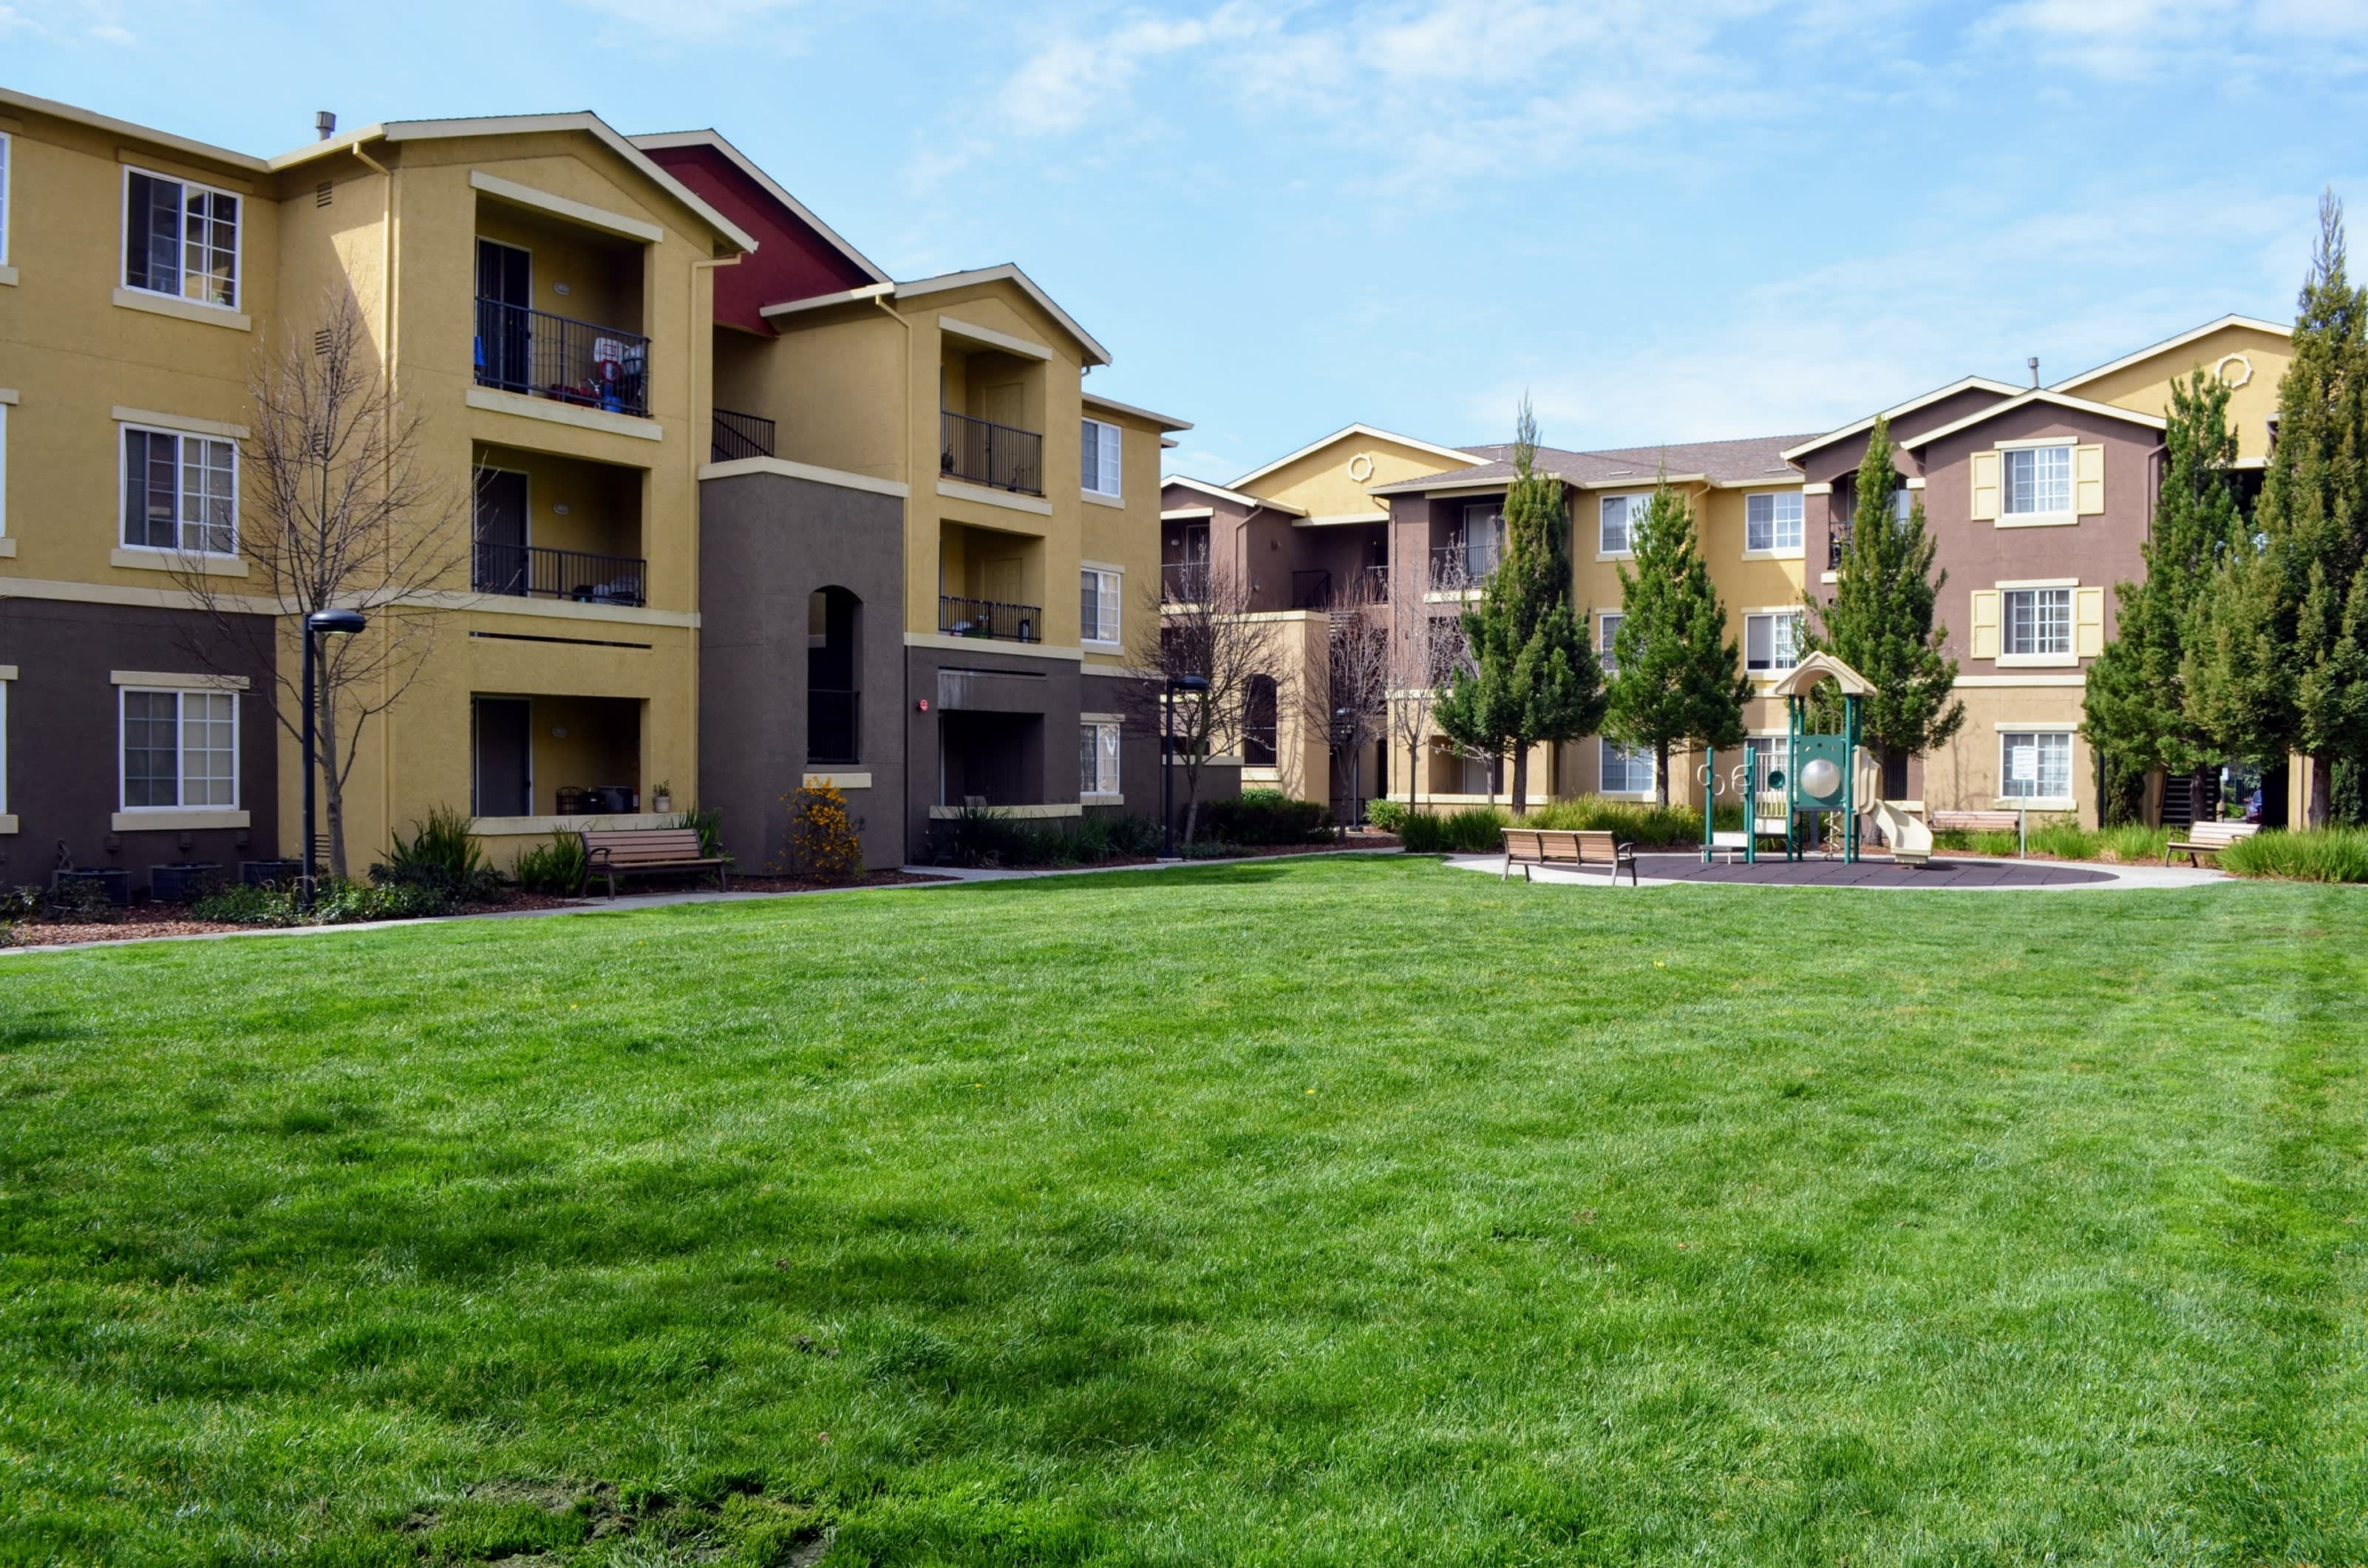 Specious Lawns at Sterling Village Apartment Homes, Vallejo, 94590